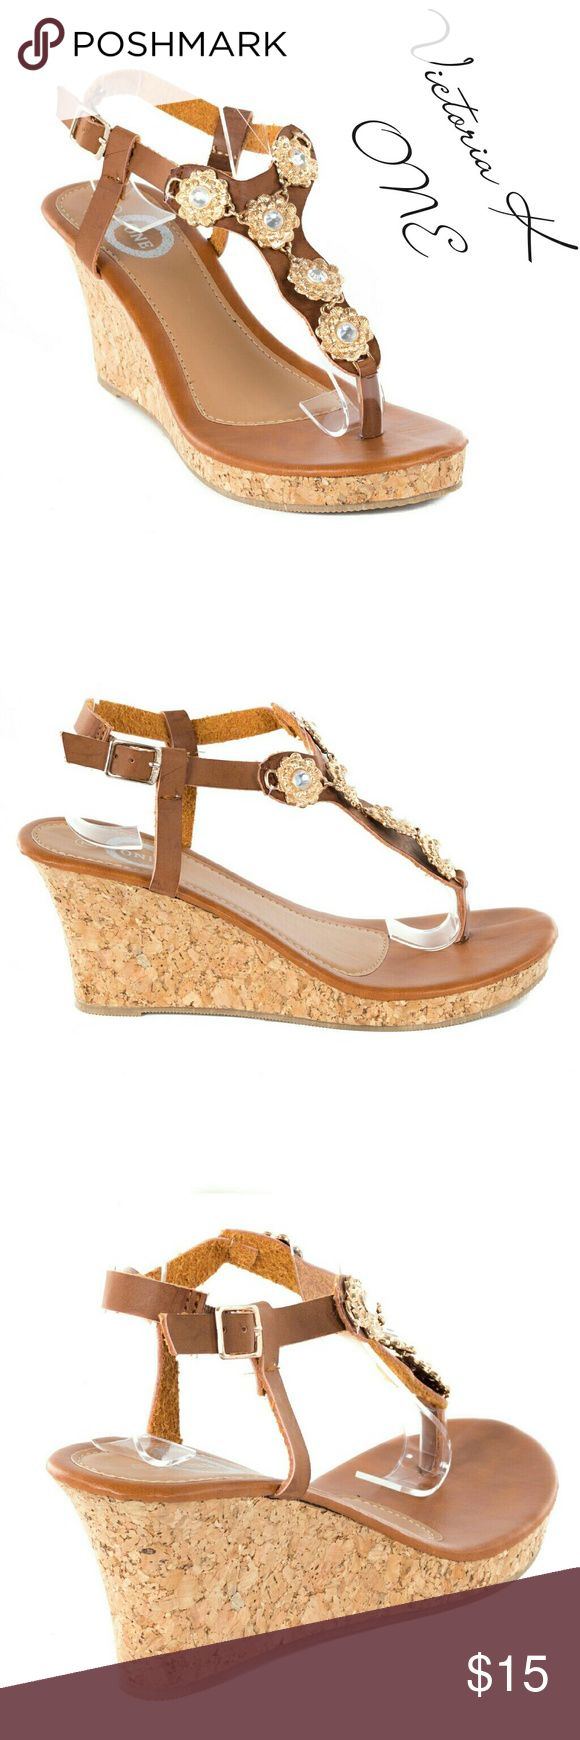 "Women Wedge Thong Sandals,  HS-2085, Camel Brand new Tory K open toe thong slingback wedge sandals in PU leather upper with beautiful decorative flower chain link in the front. 4"" cork platform, cushioned sole, from the ONE collection. Perfect for summer. A true statement in ladies shoes fashion! Tory K  Shoes Sandals"